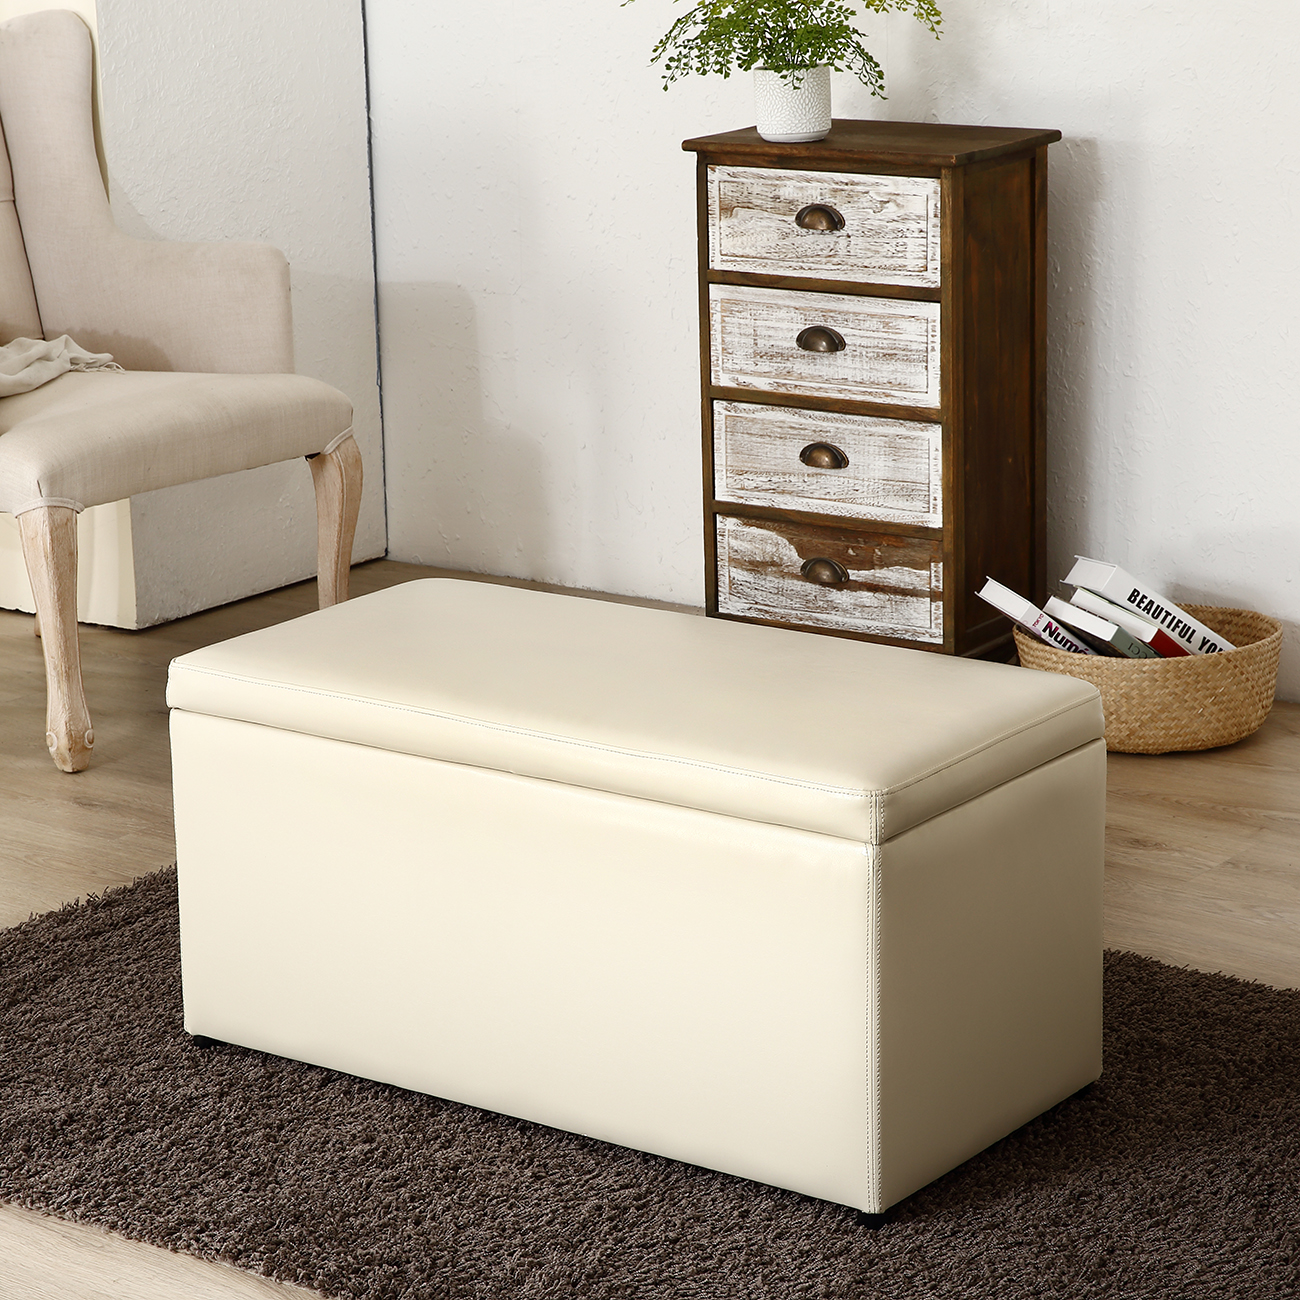 3 Piece Ottoman Bench Cube Storage Box Lounge Seat Footstools With Lid Cream